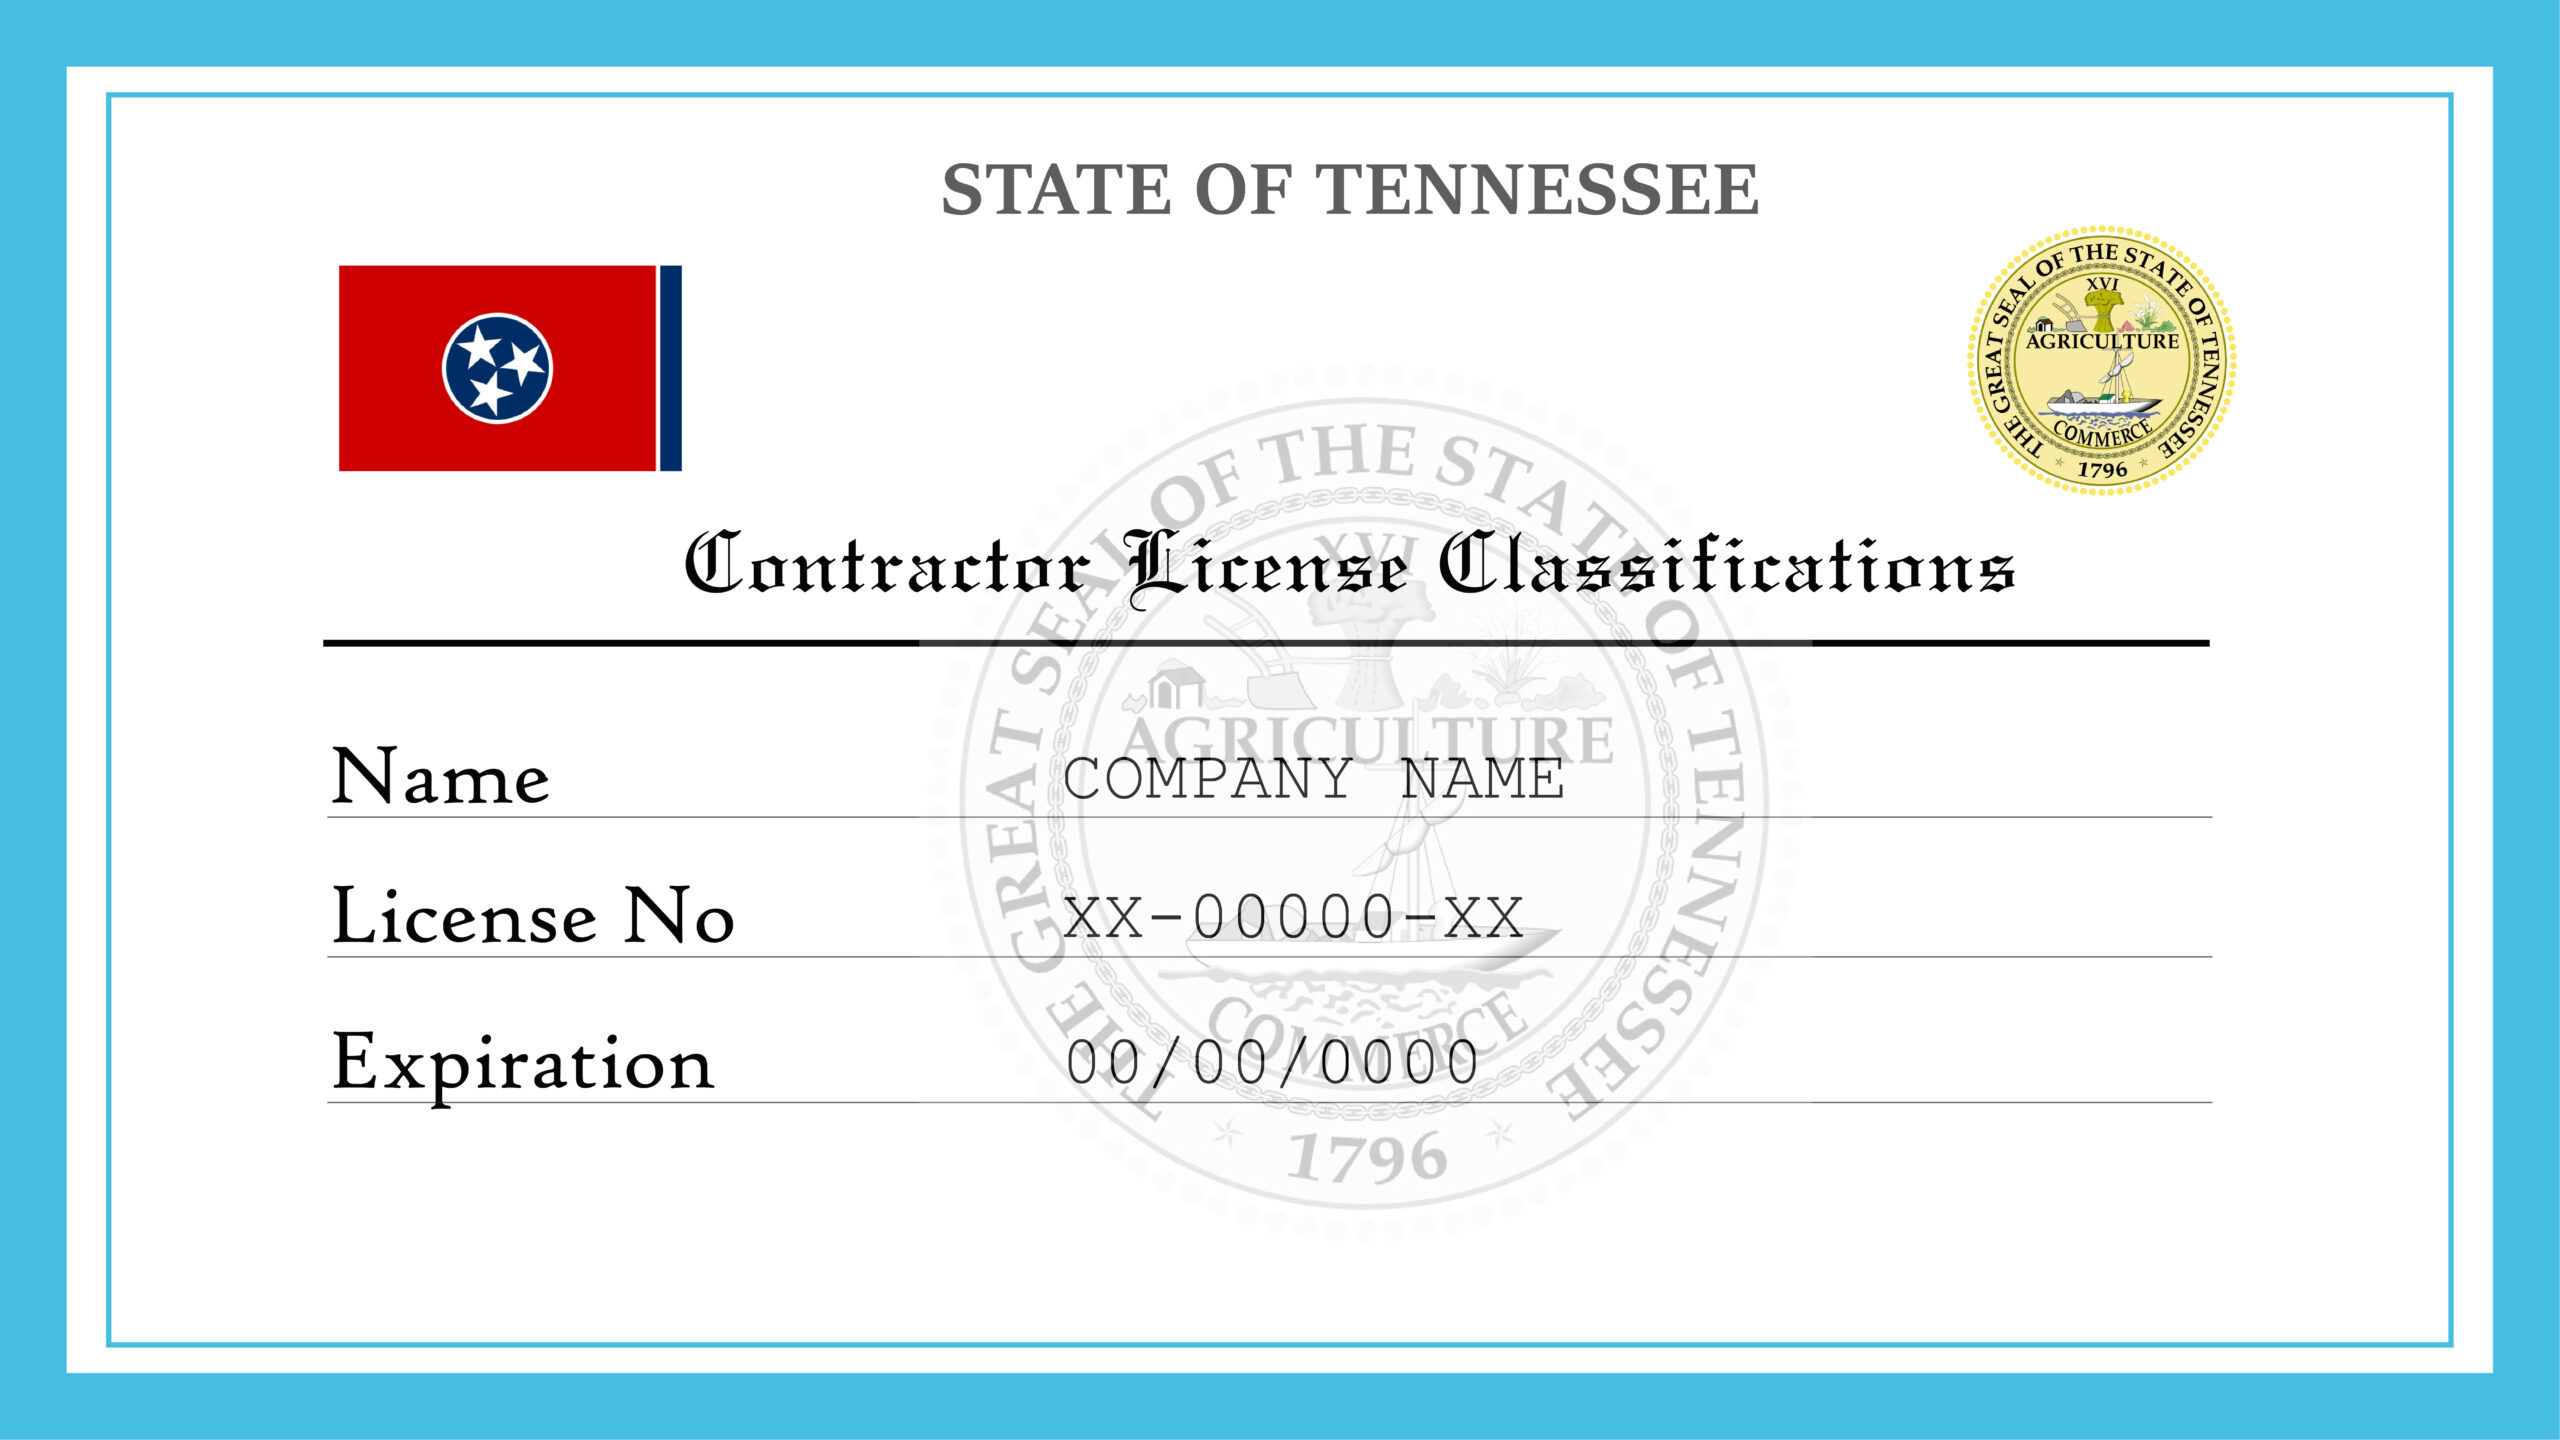 Sample Tennessee Contractor License Classifications